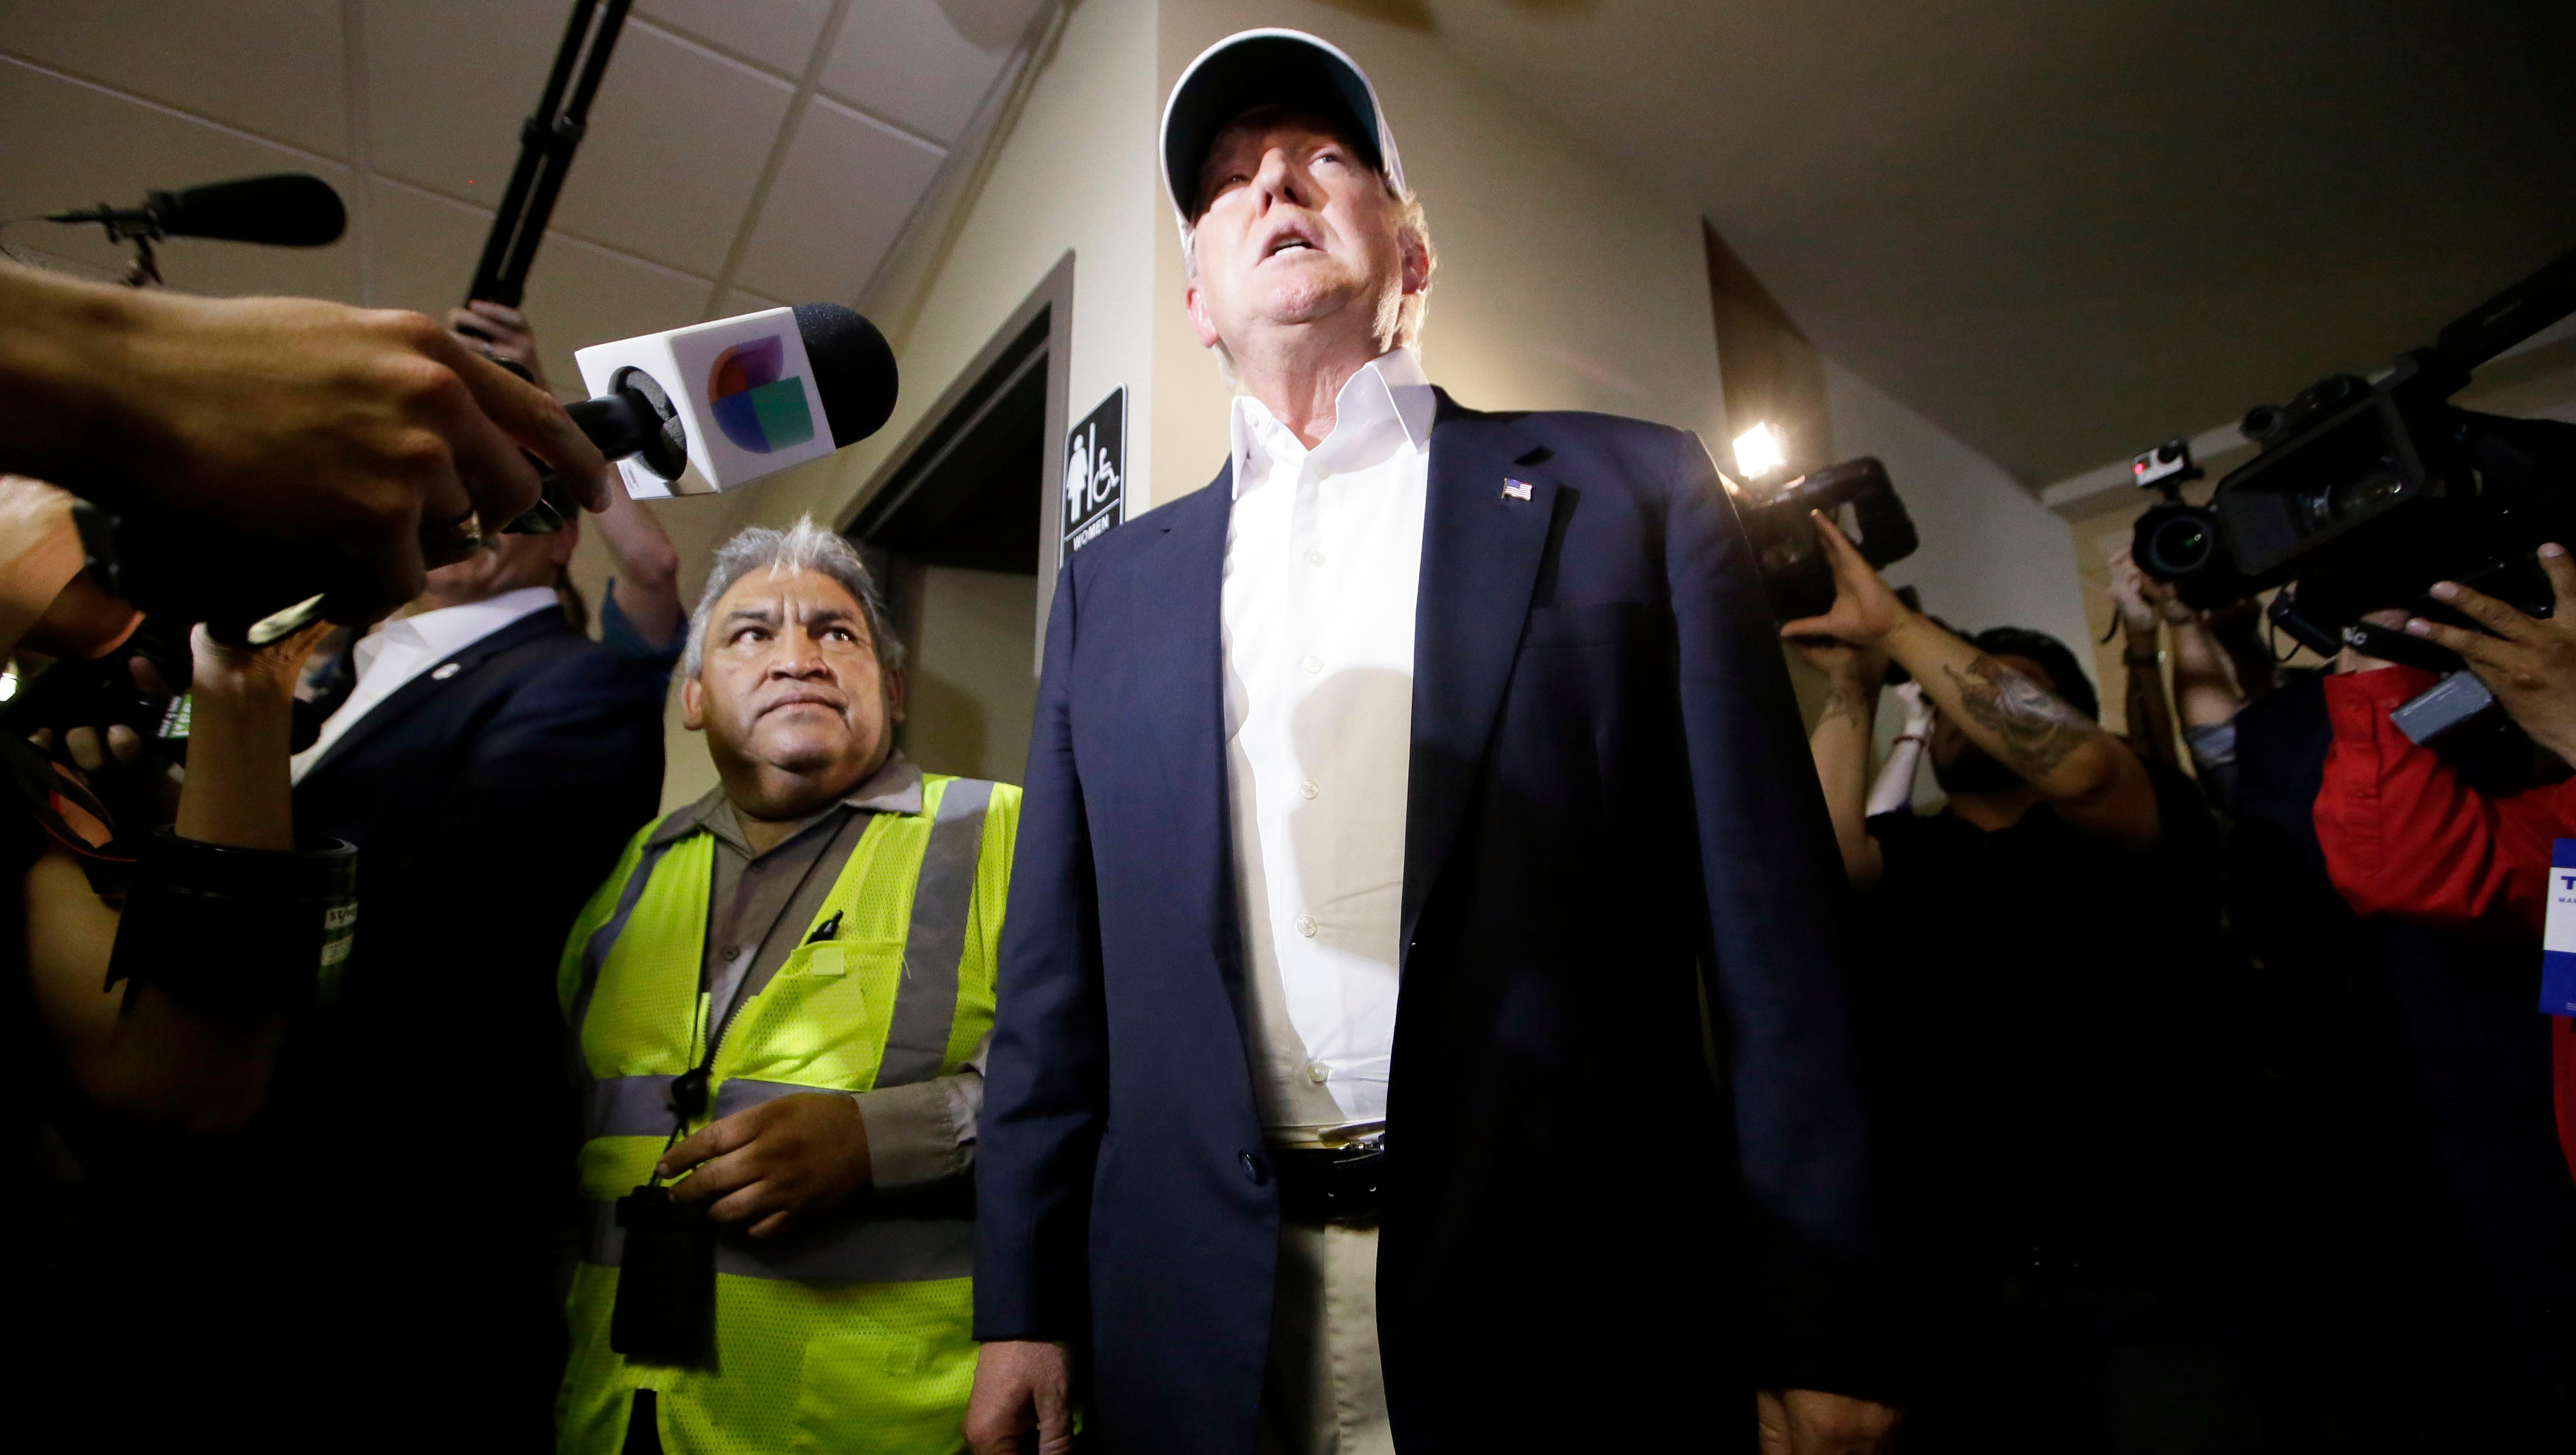 Trump pledges to deport illegal immigrants from US